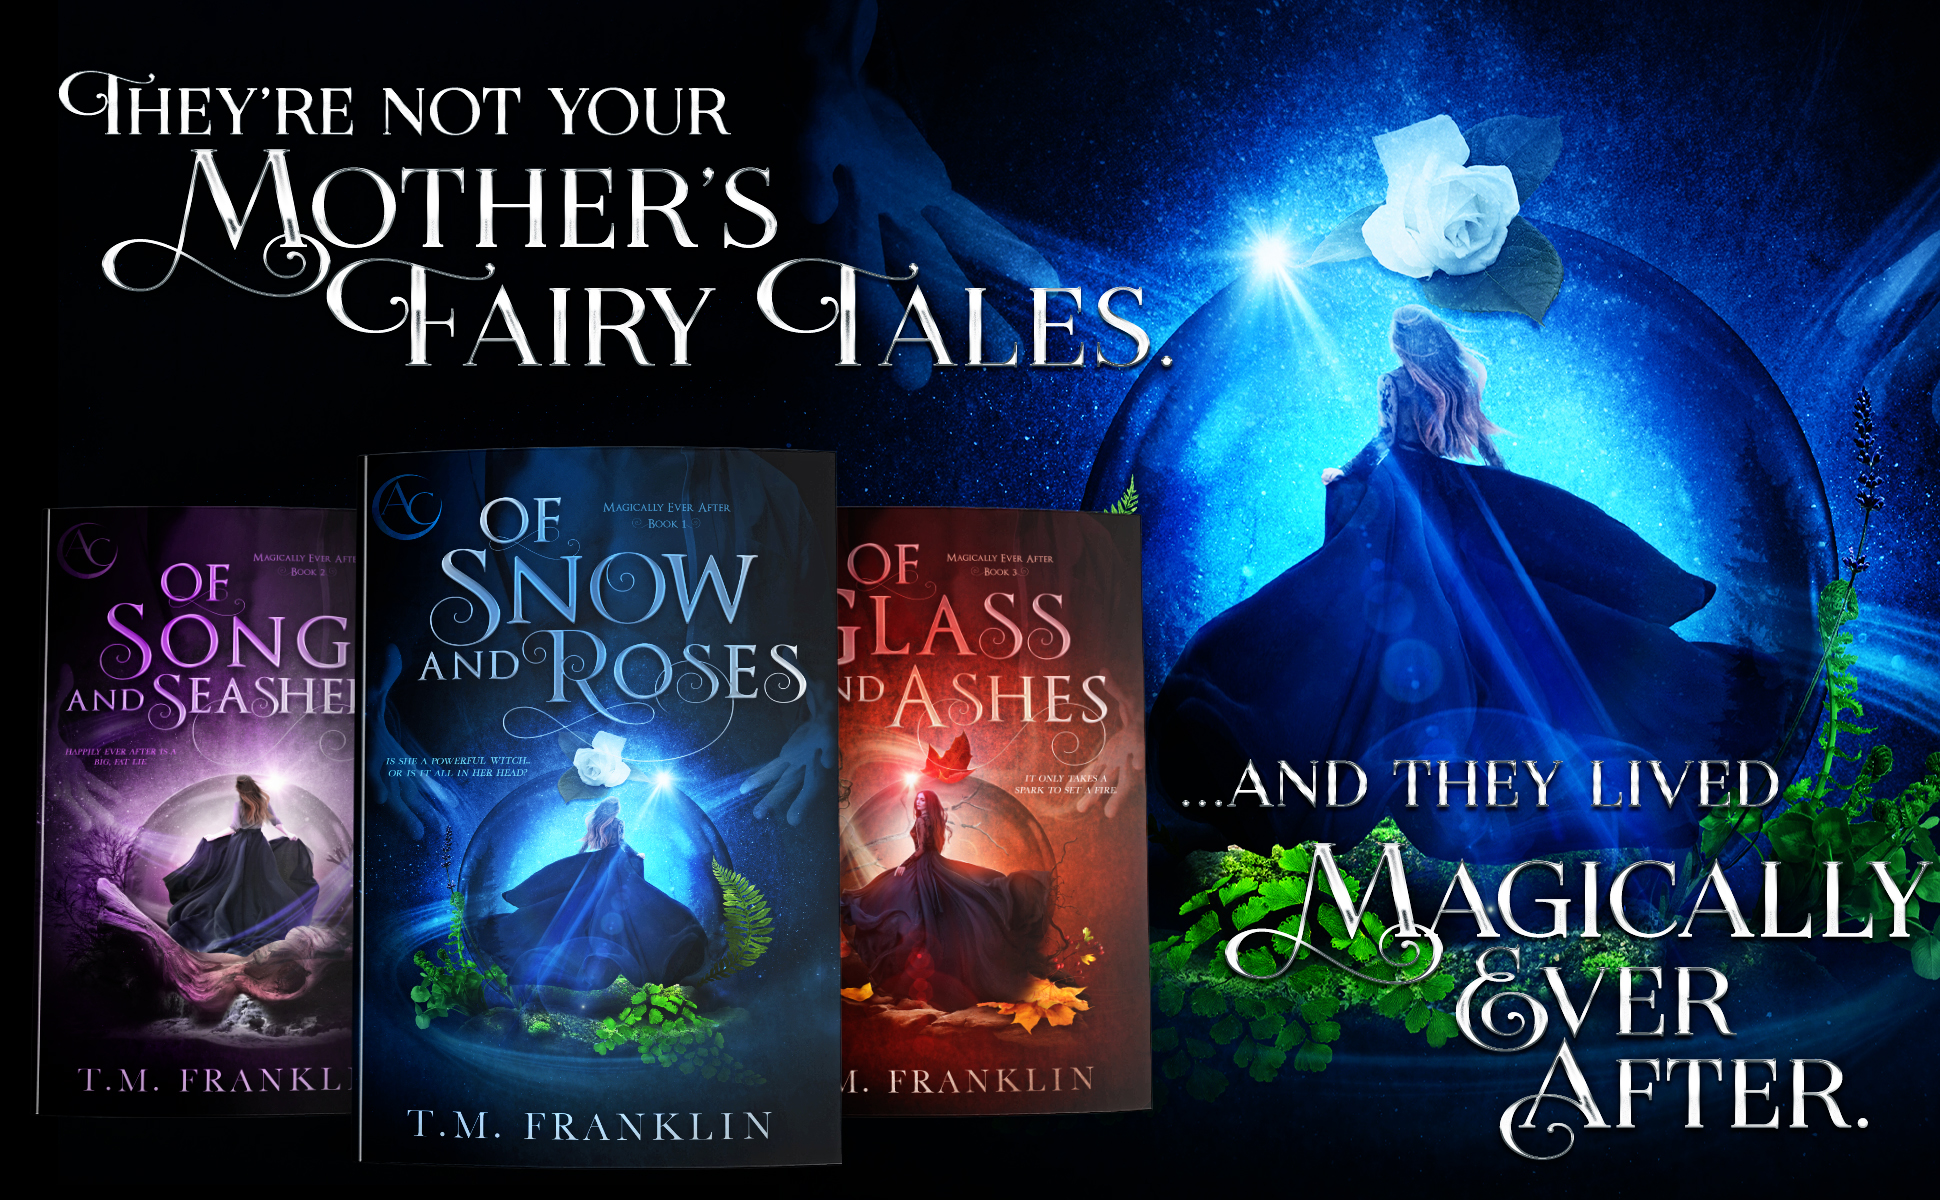 They're not your mother's fairy tales.